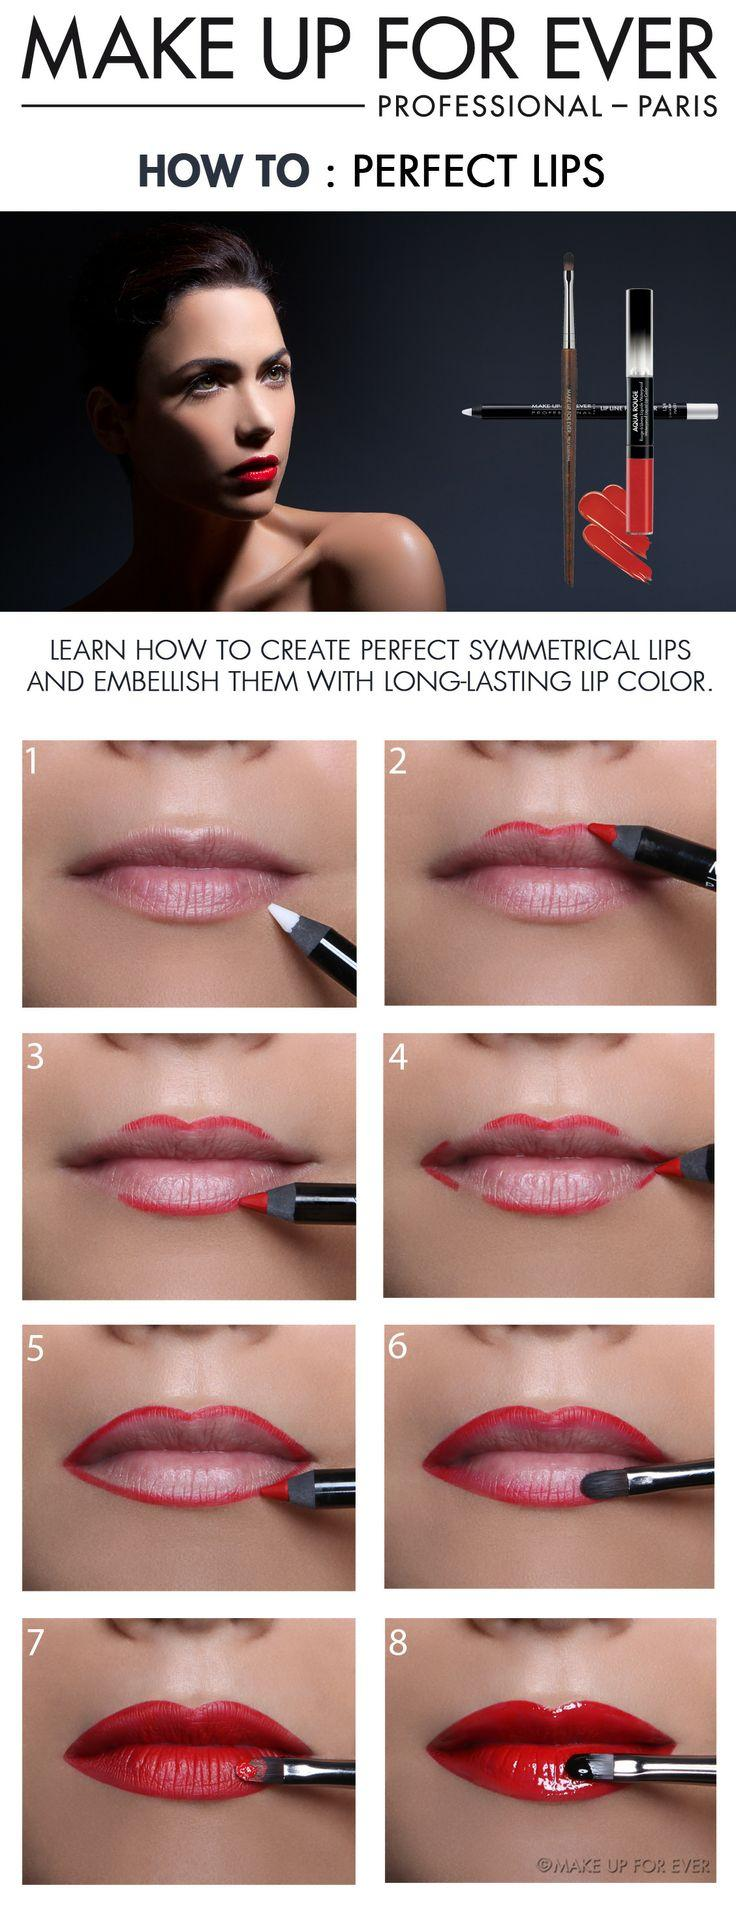 Makeup - Best Lipstick #2341652 - Weddbook